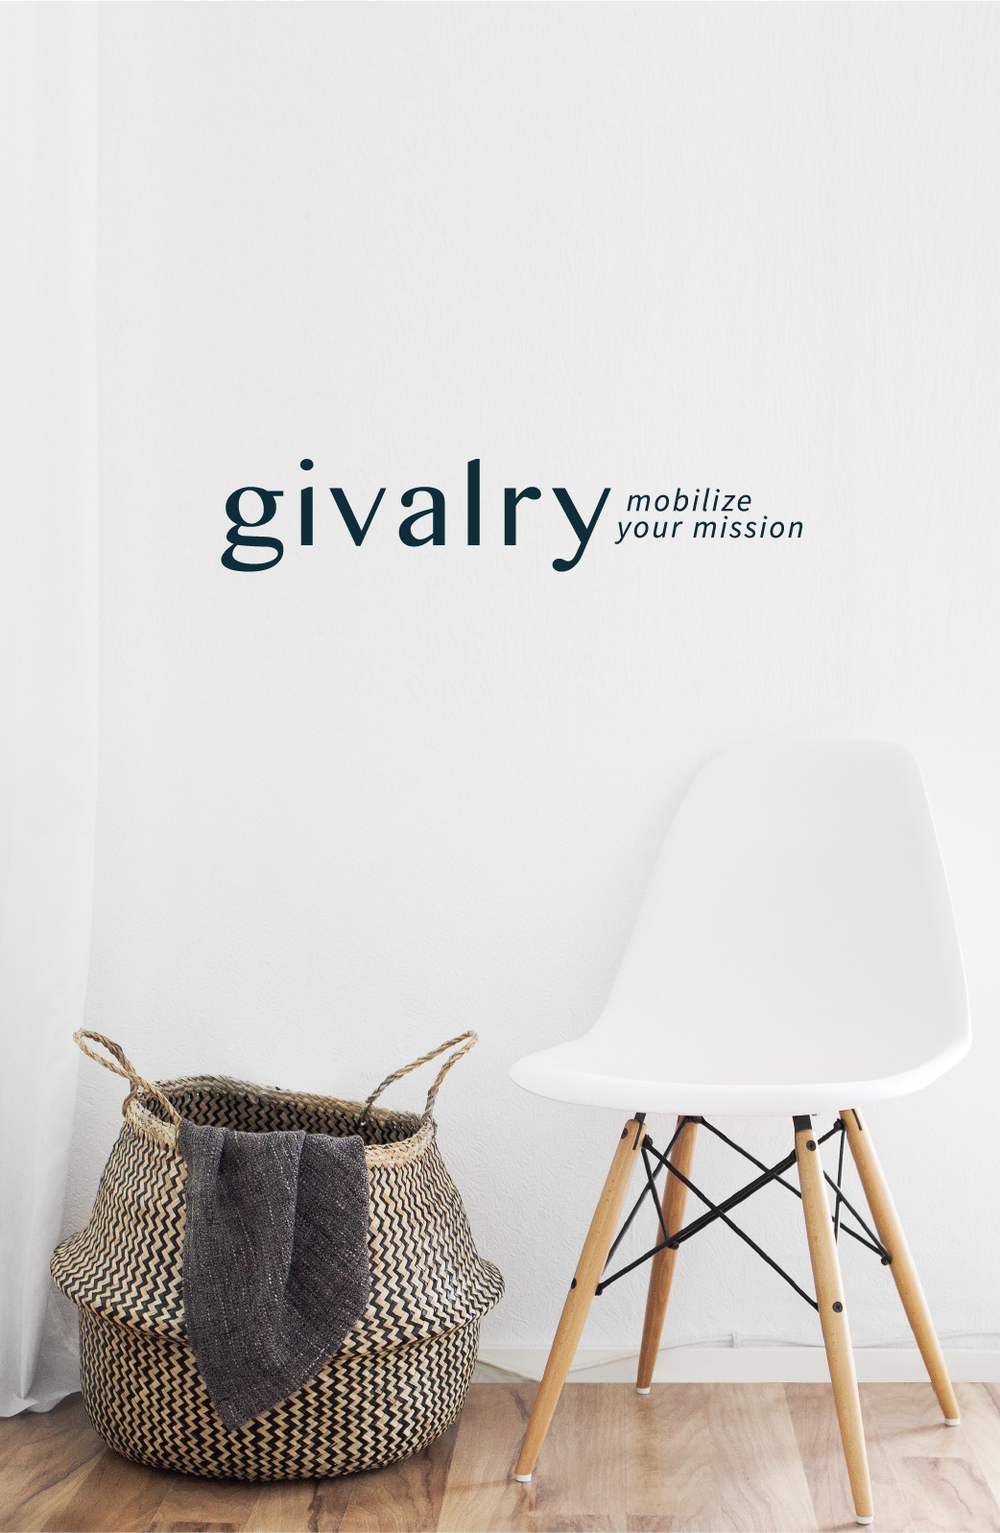 Givarly logo shown on a photo with a wicker basket and a white wood chair